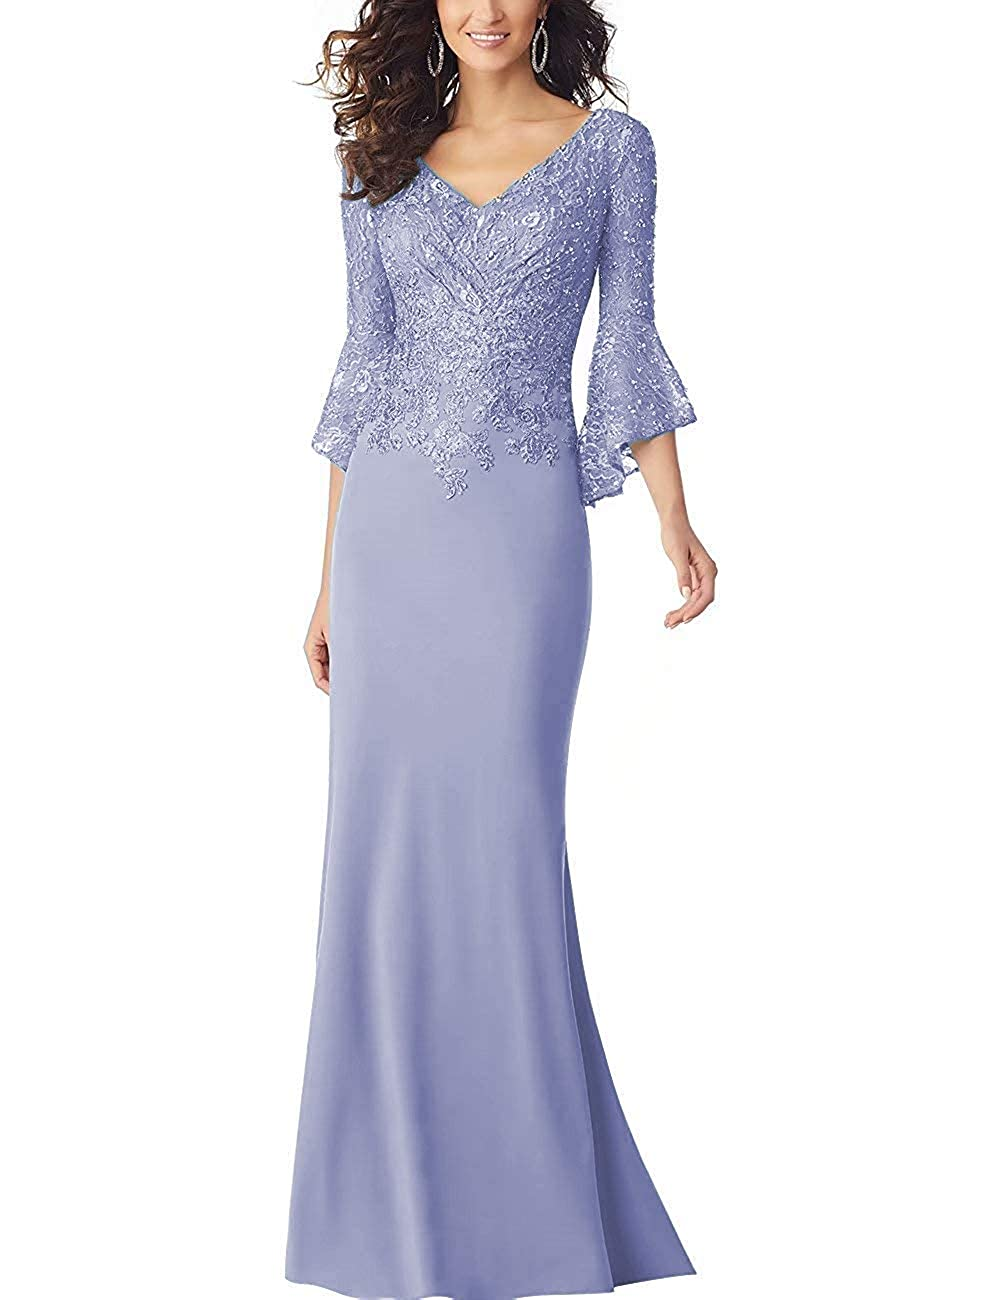 Lavender PearlBridal Women's Bodycon Mermaid Mother of The Bride Dresses Lace Ruffle Sleeves Long Evening Party Gown